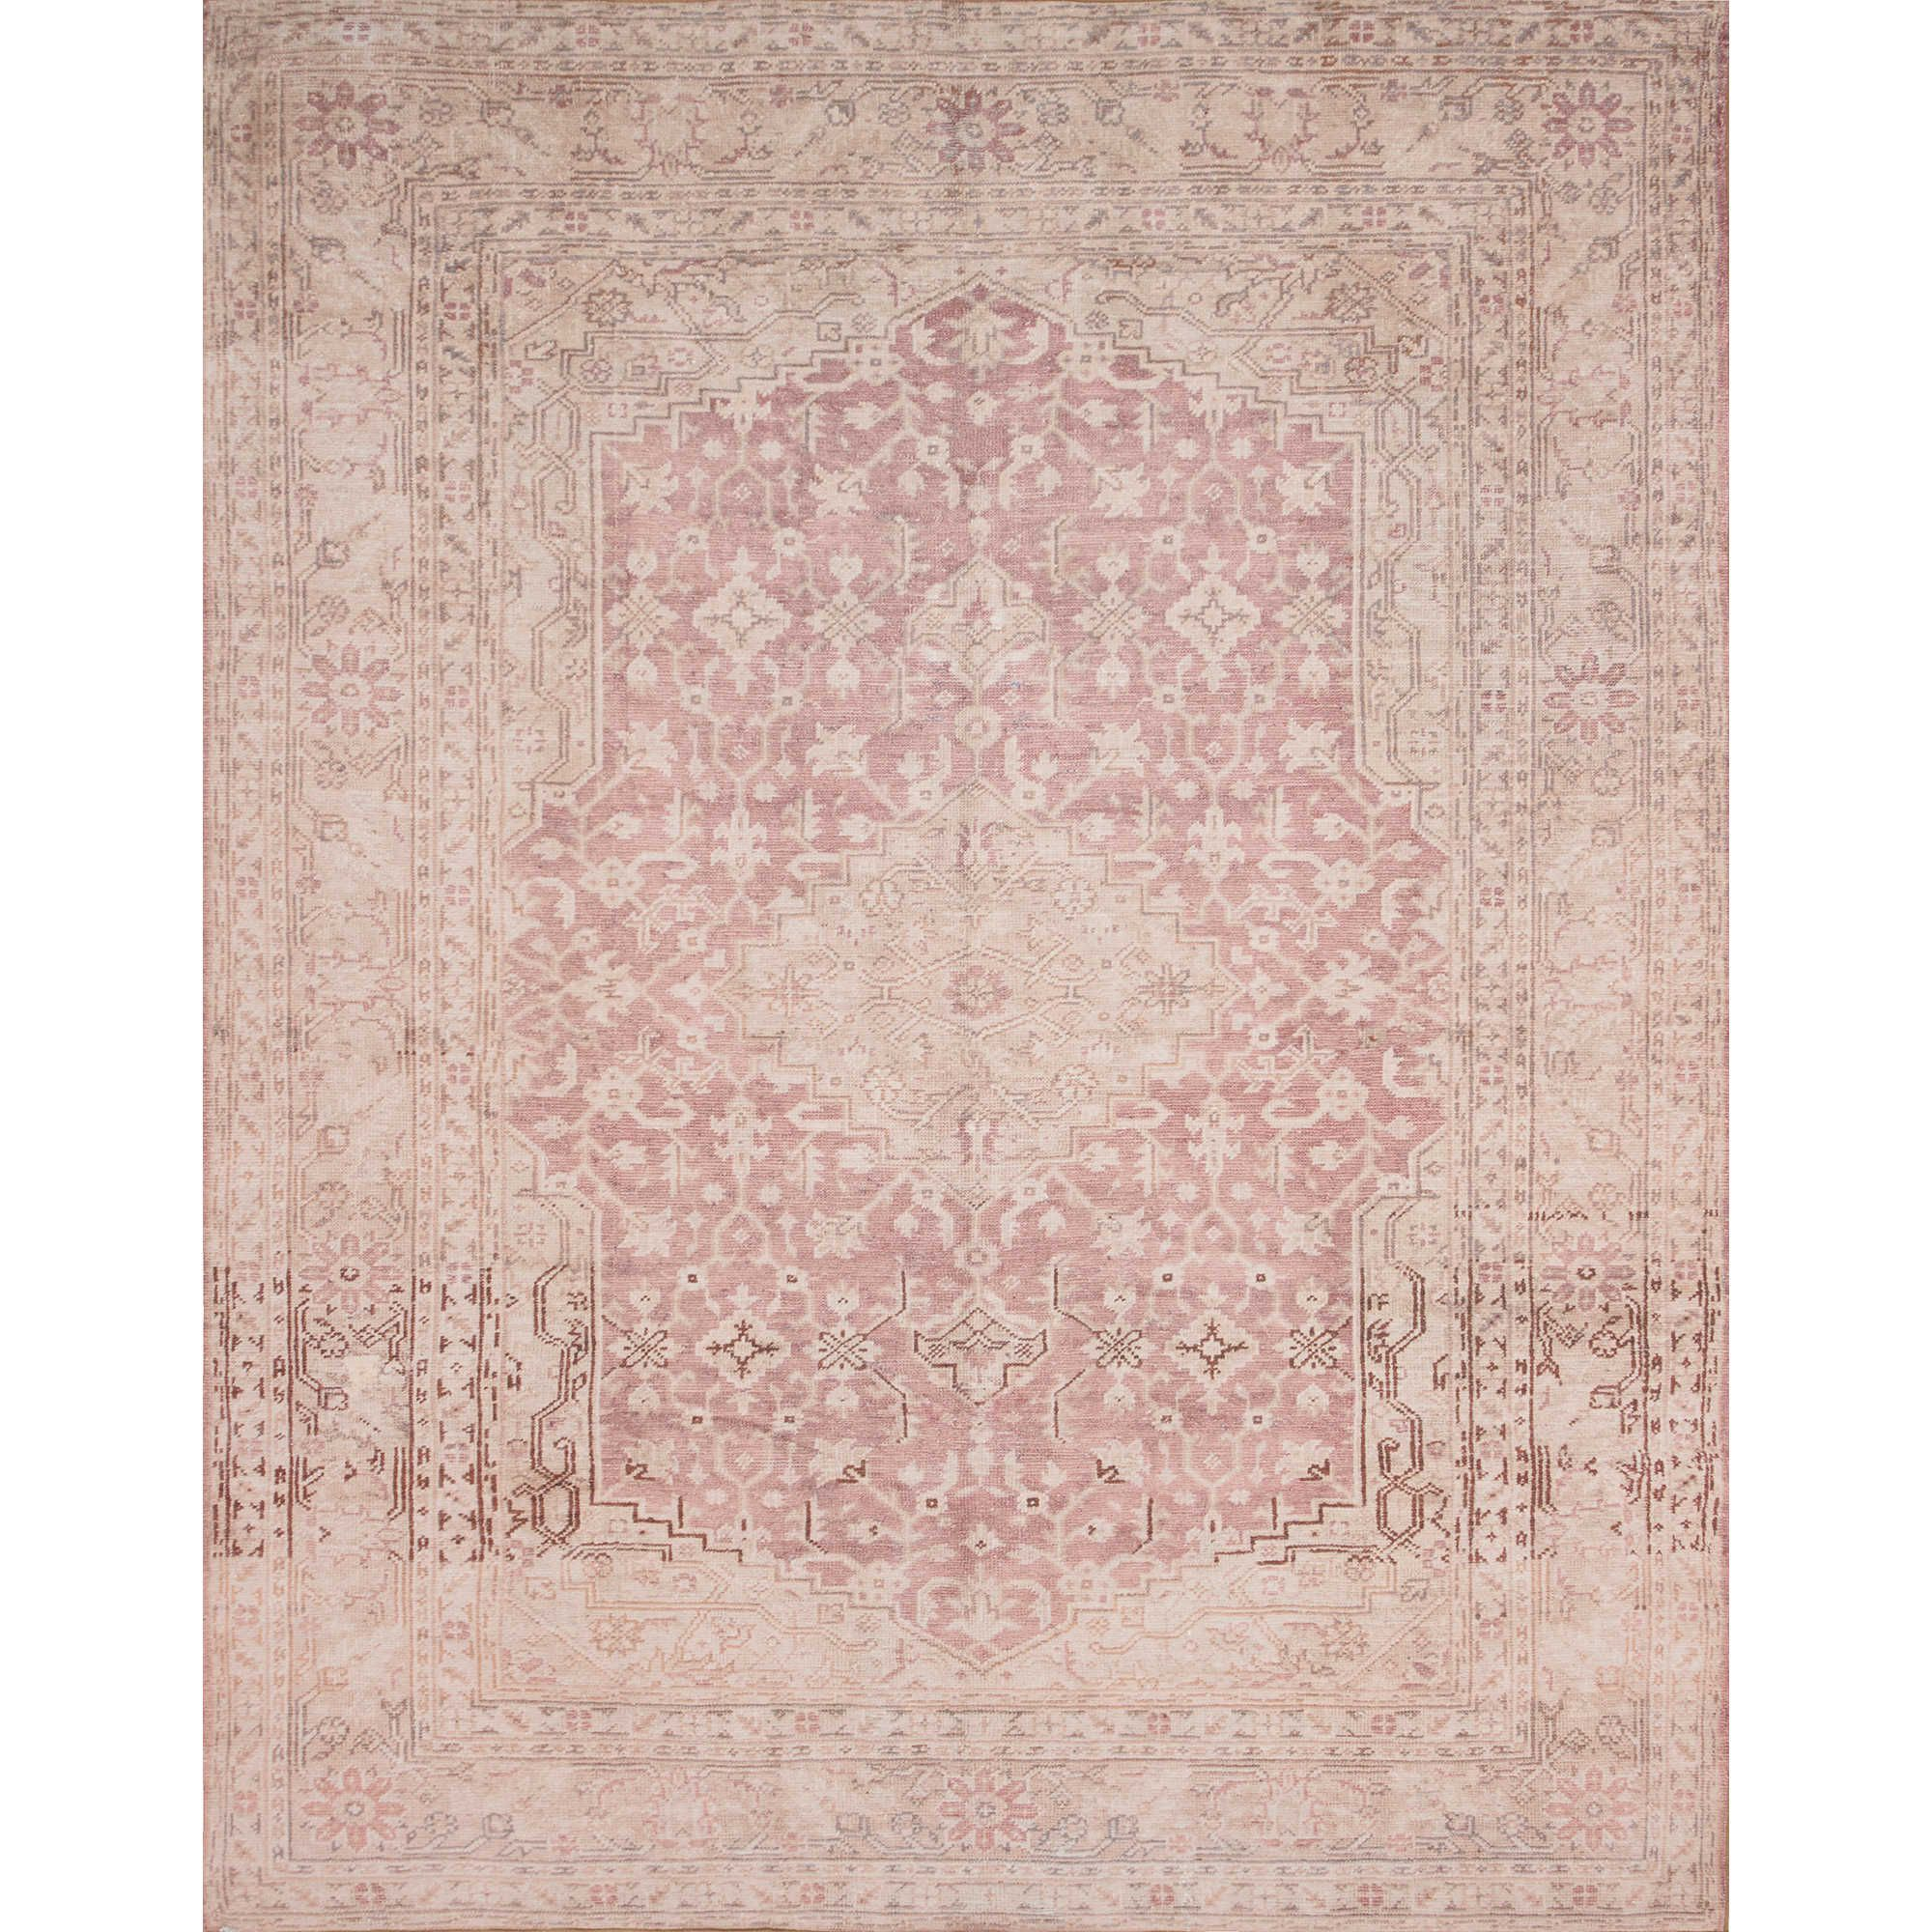 Magnolia Home By Joanna Gaines Lucca Rug Bed Bath Beyond Joanna Gaines Rugs Magnolia Homes Magnolia Home Rugs [ 2000 x 2000 Pixel ]